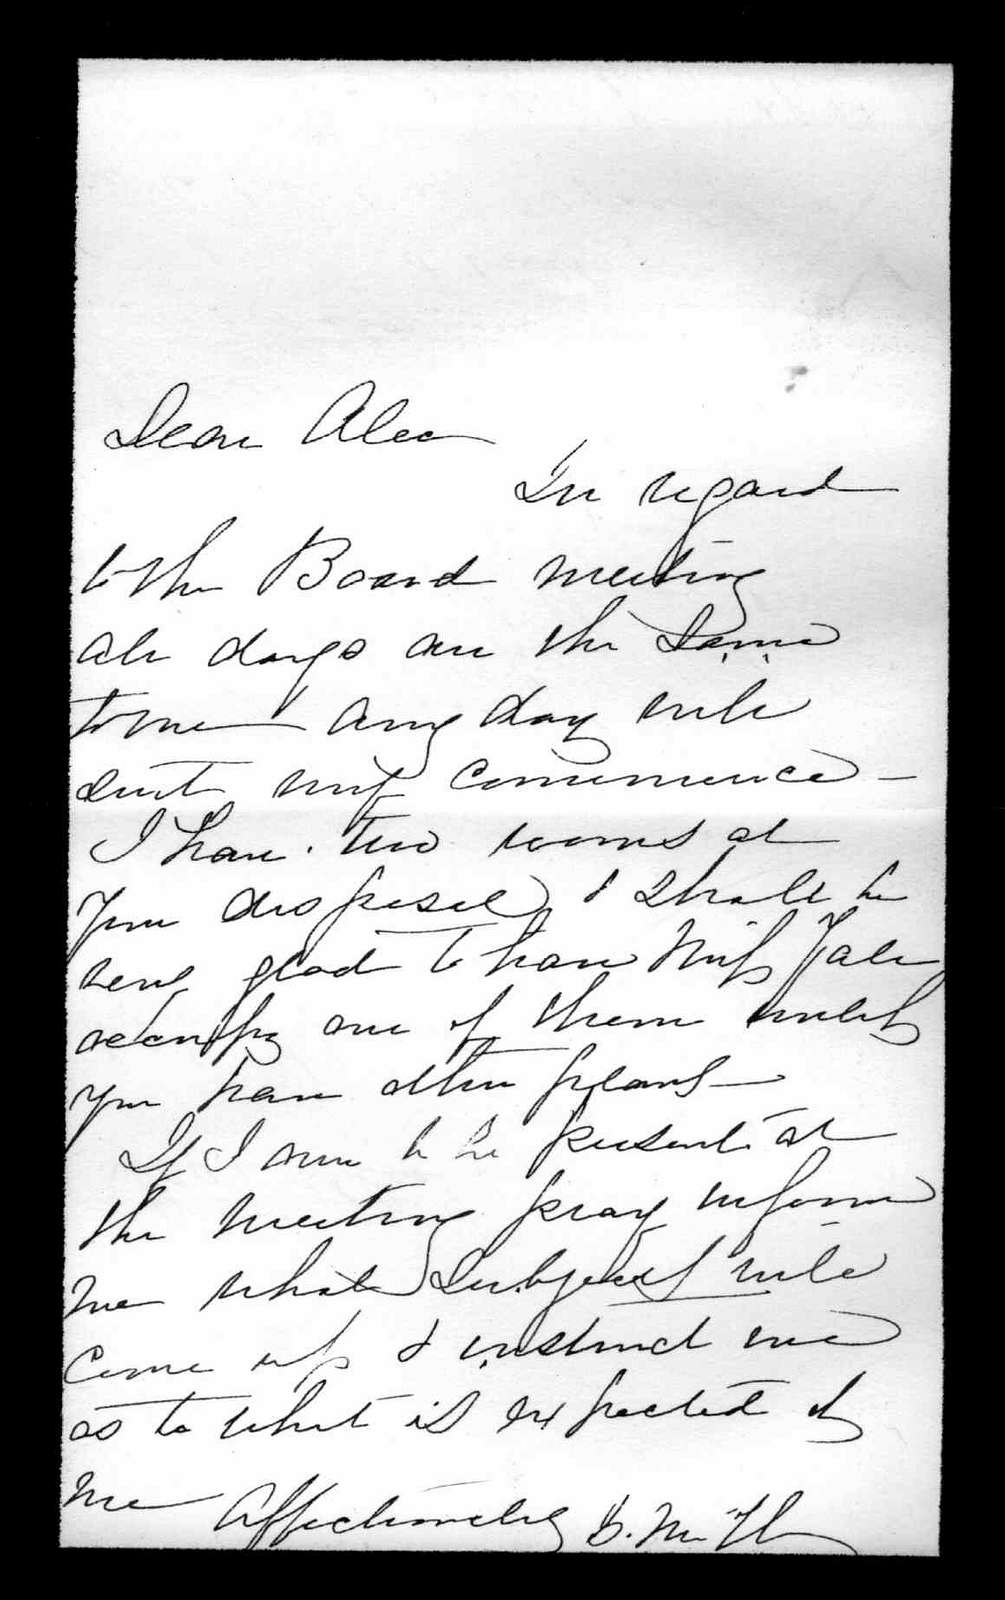 Letter from Gertrude McCurdy Hubbard to Alexander Graham Bell, undated